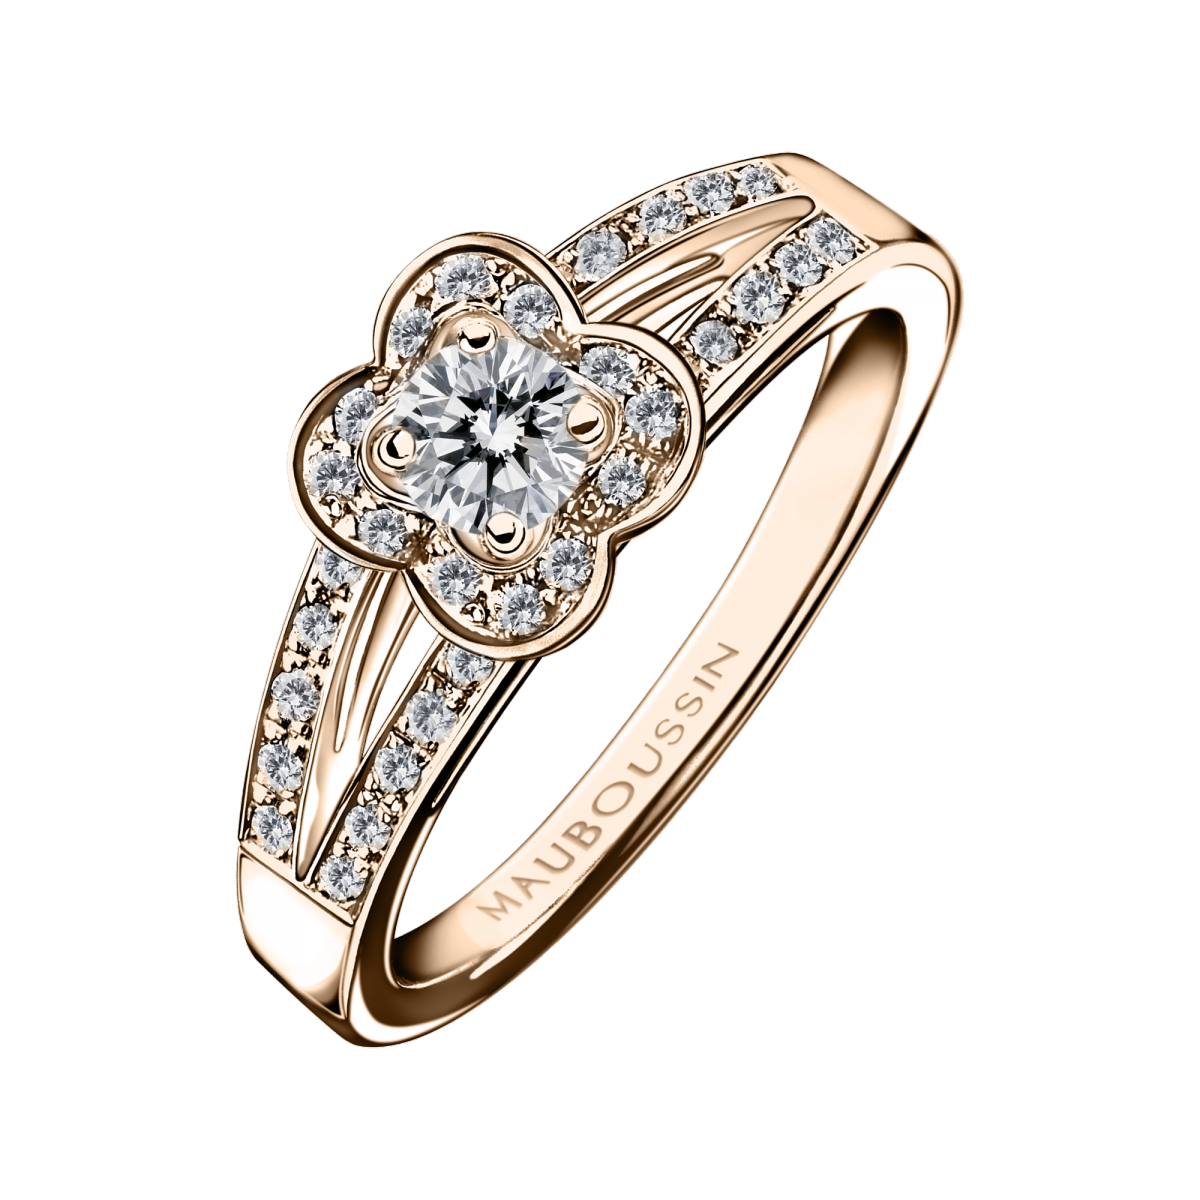 Chance of Love N°2 ring, pink gold and diamonds